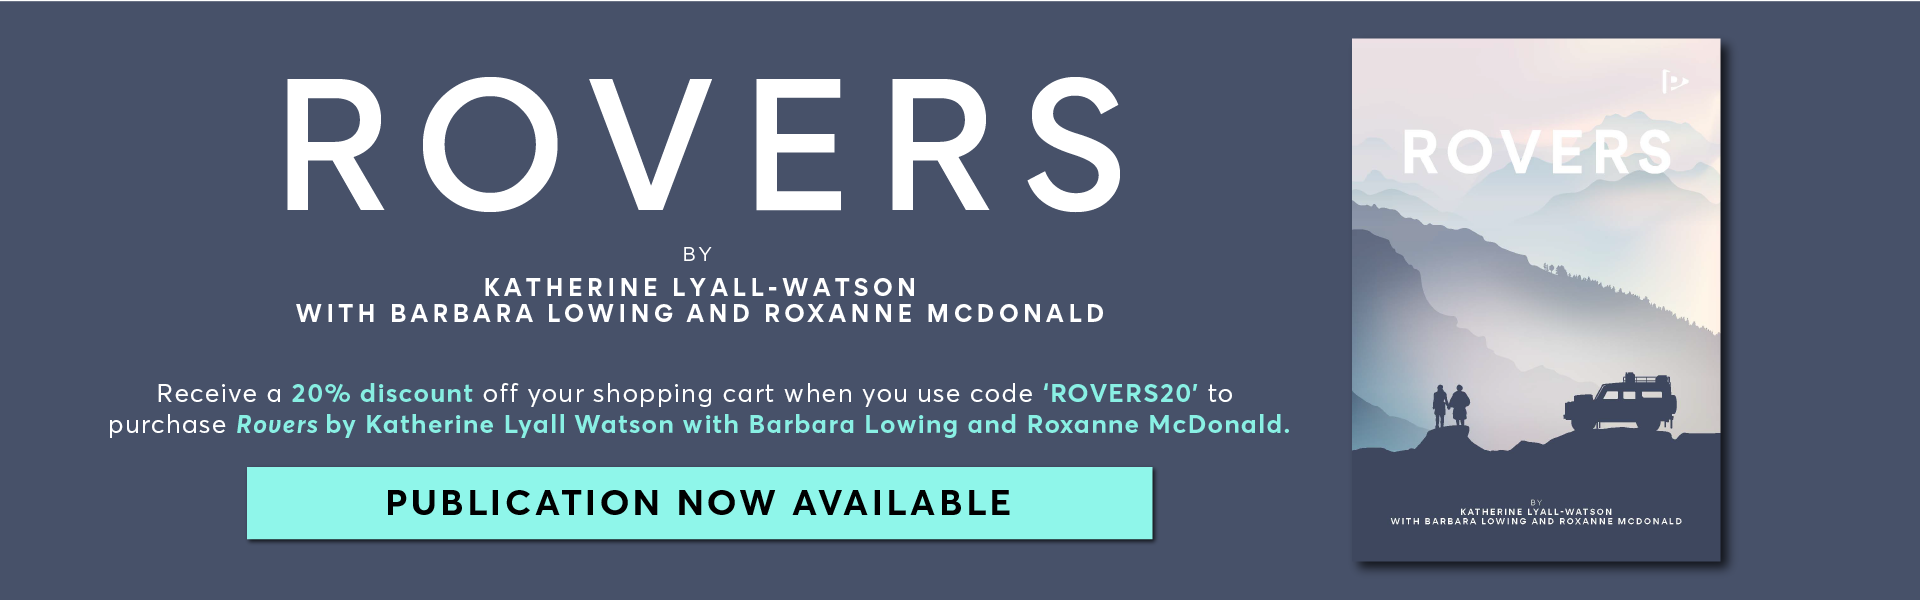 Rovers by Katherine Lyall-Watson with Barbara Lowing and Roxanne McDonald